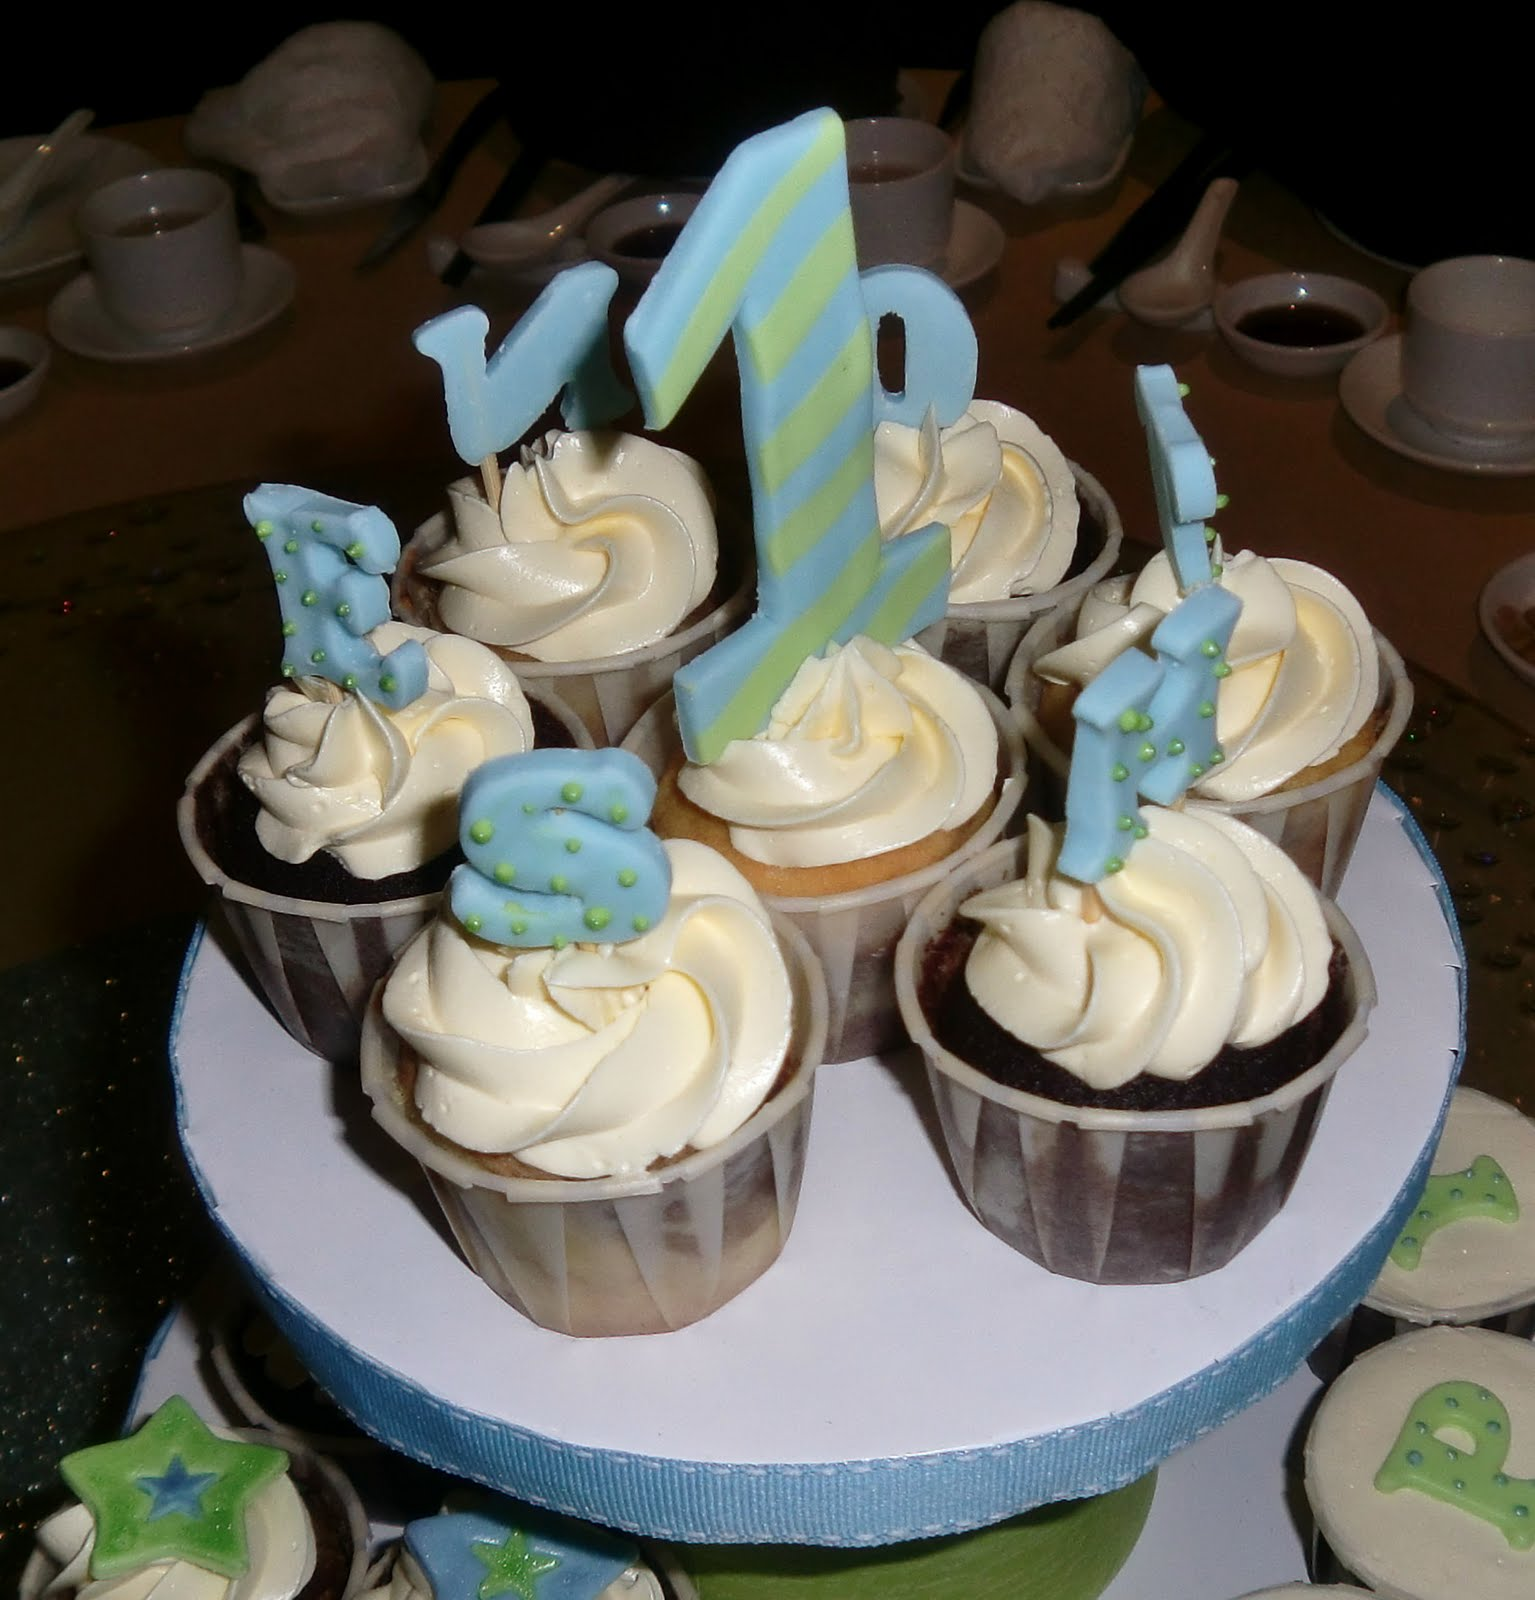 Babysweet Cakes Birthday Cupcake Tiers for 1year old Boy